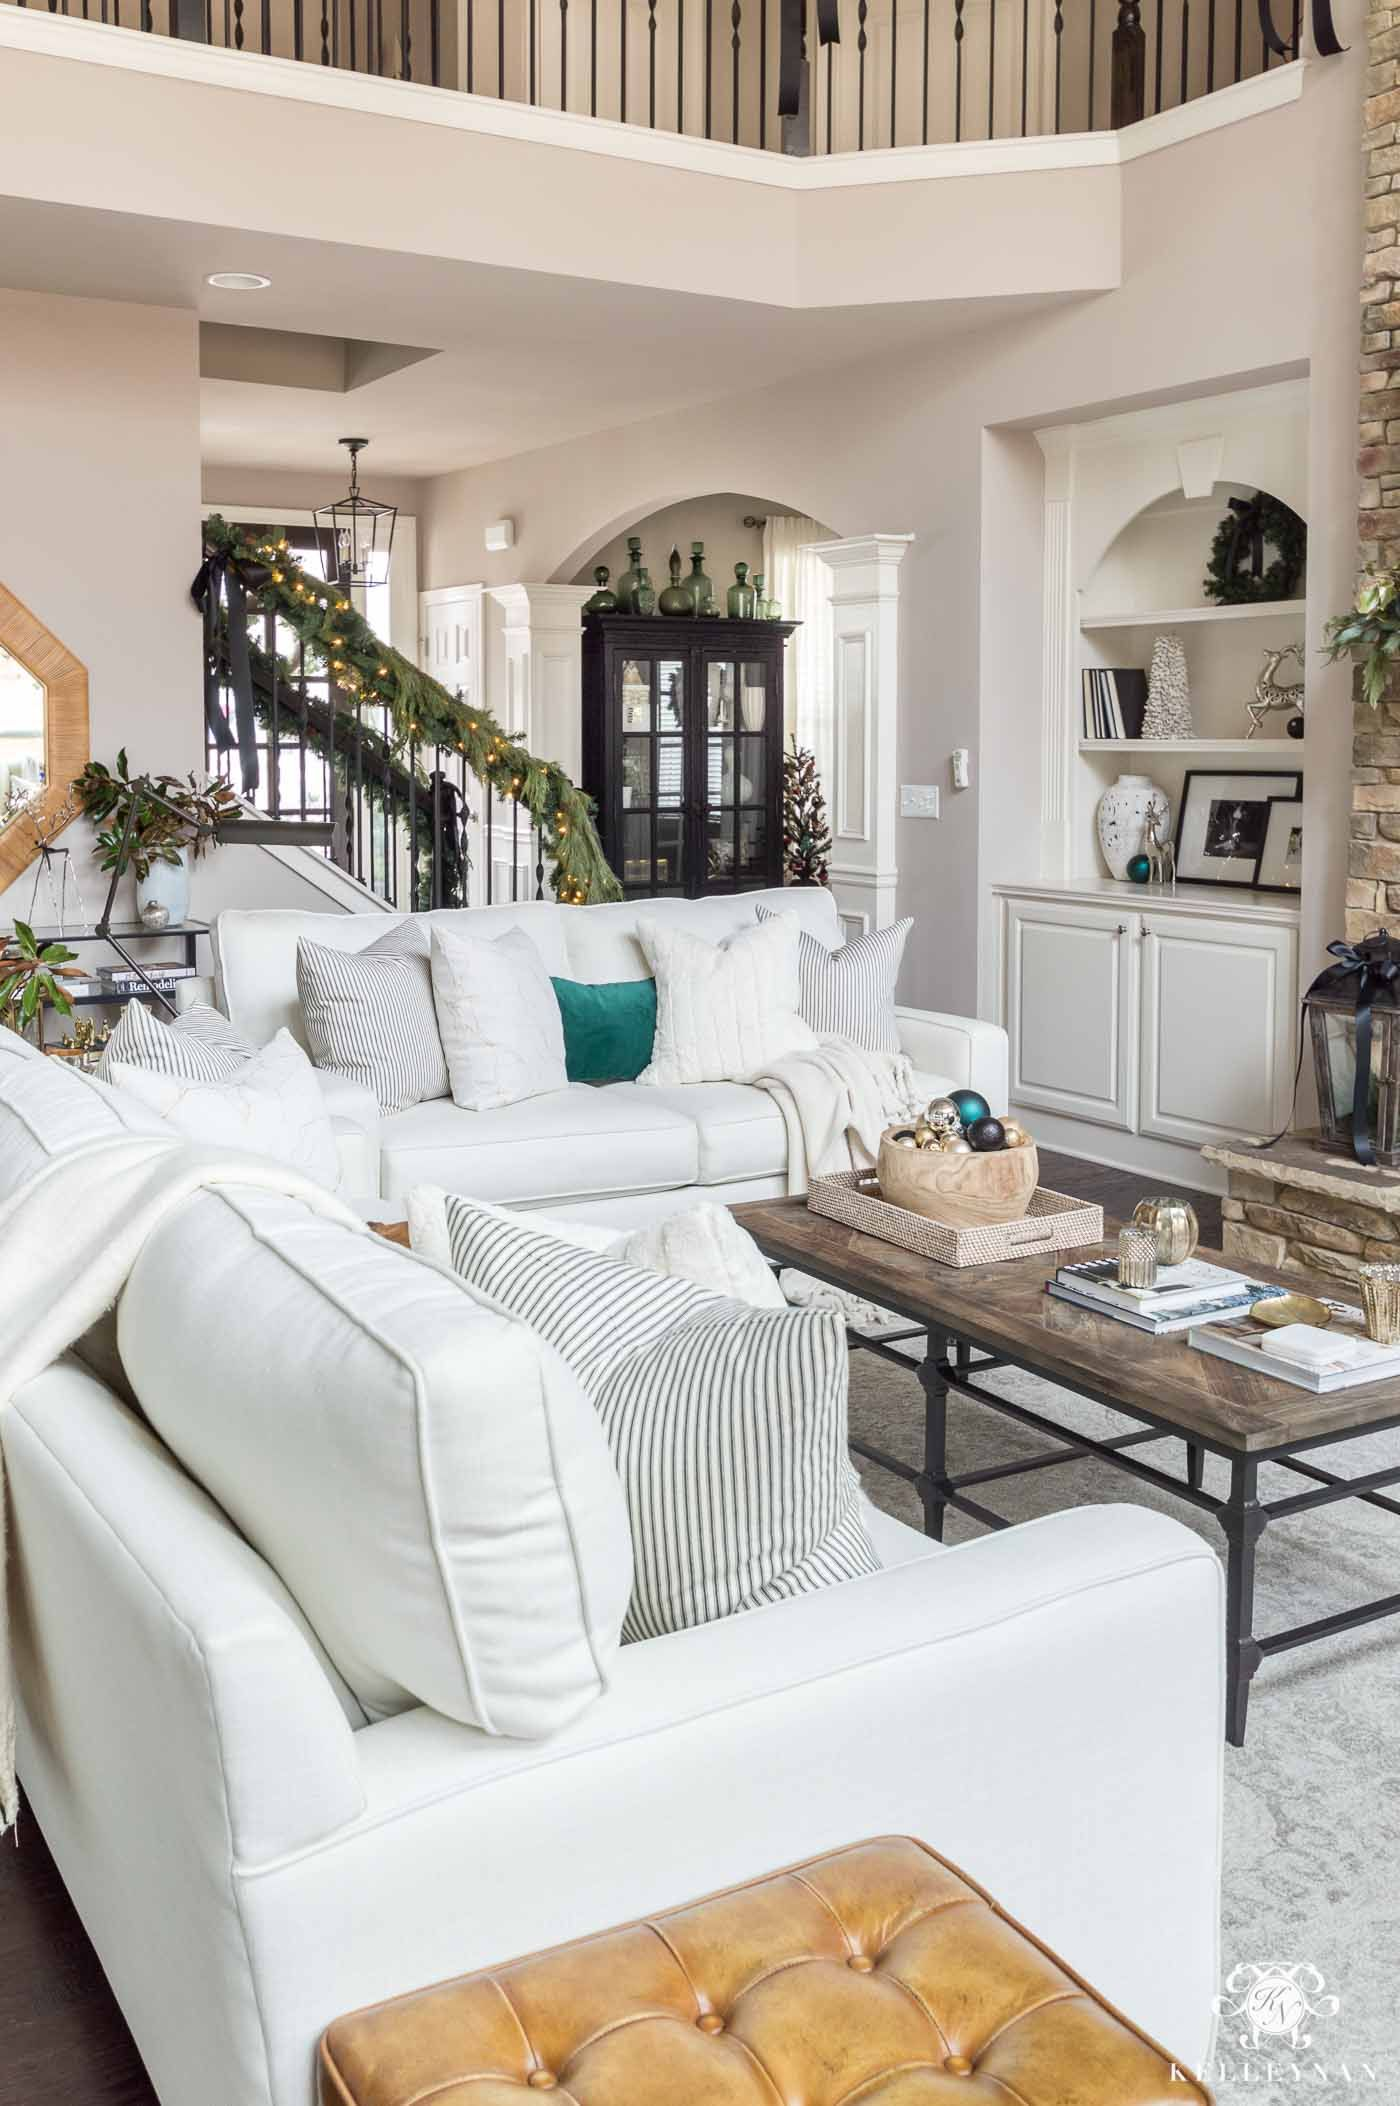 30 White Living Room Ideas: 10 Tips For Quick Cleaning In Under 30 Minutes